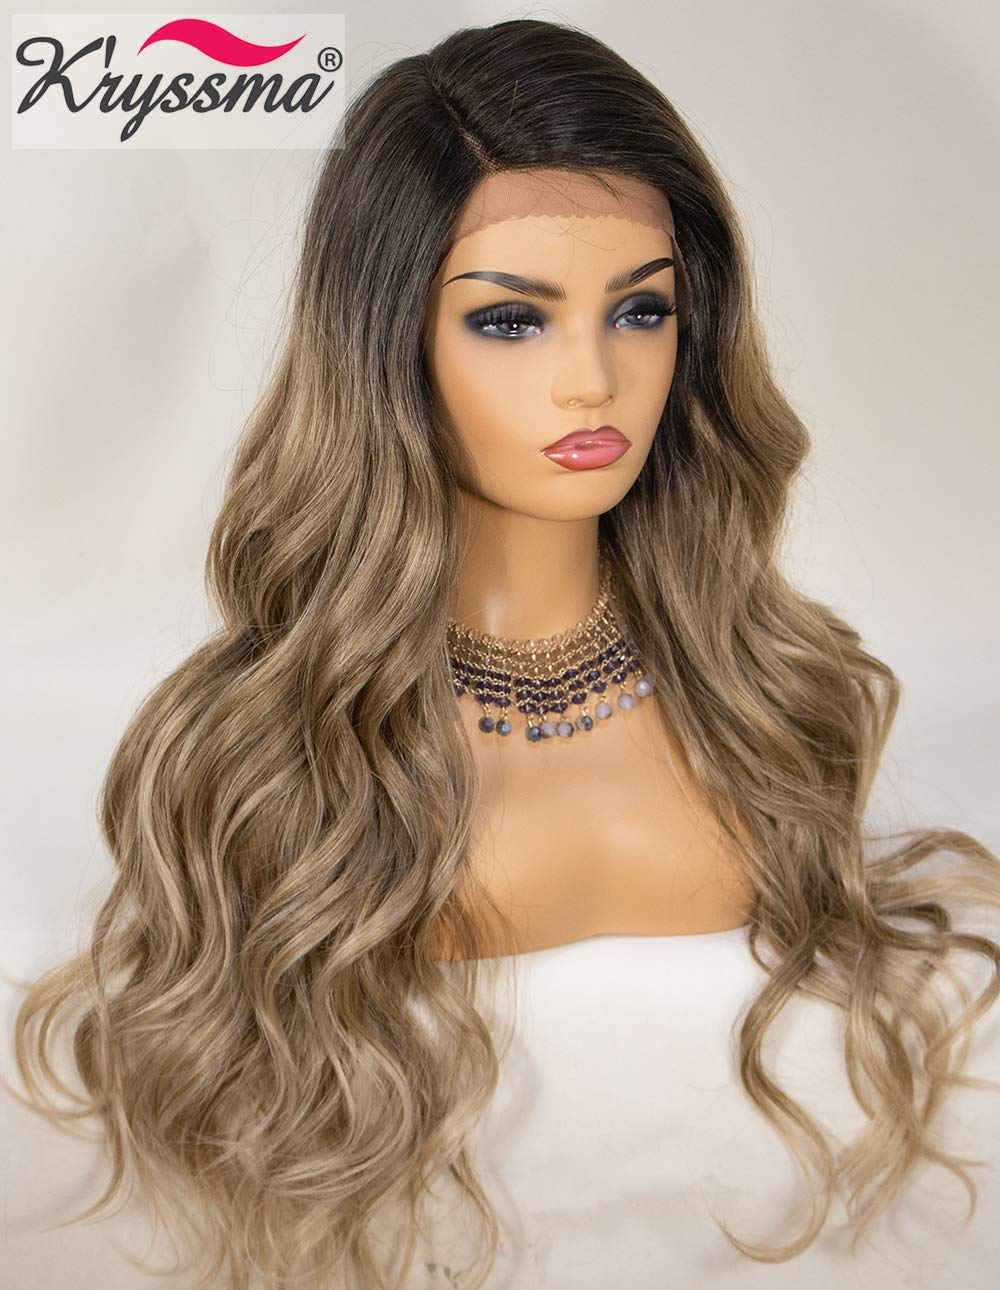 K'ryssma Ash Blonde Lace Front Wig Ombre Side Deep Parting Long Wavy Ombre Synthetic Wigs 22 inches 130% Density Heat Resistant Ombre Blonde Wigs by K'ryssma